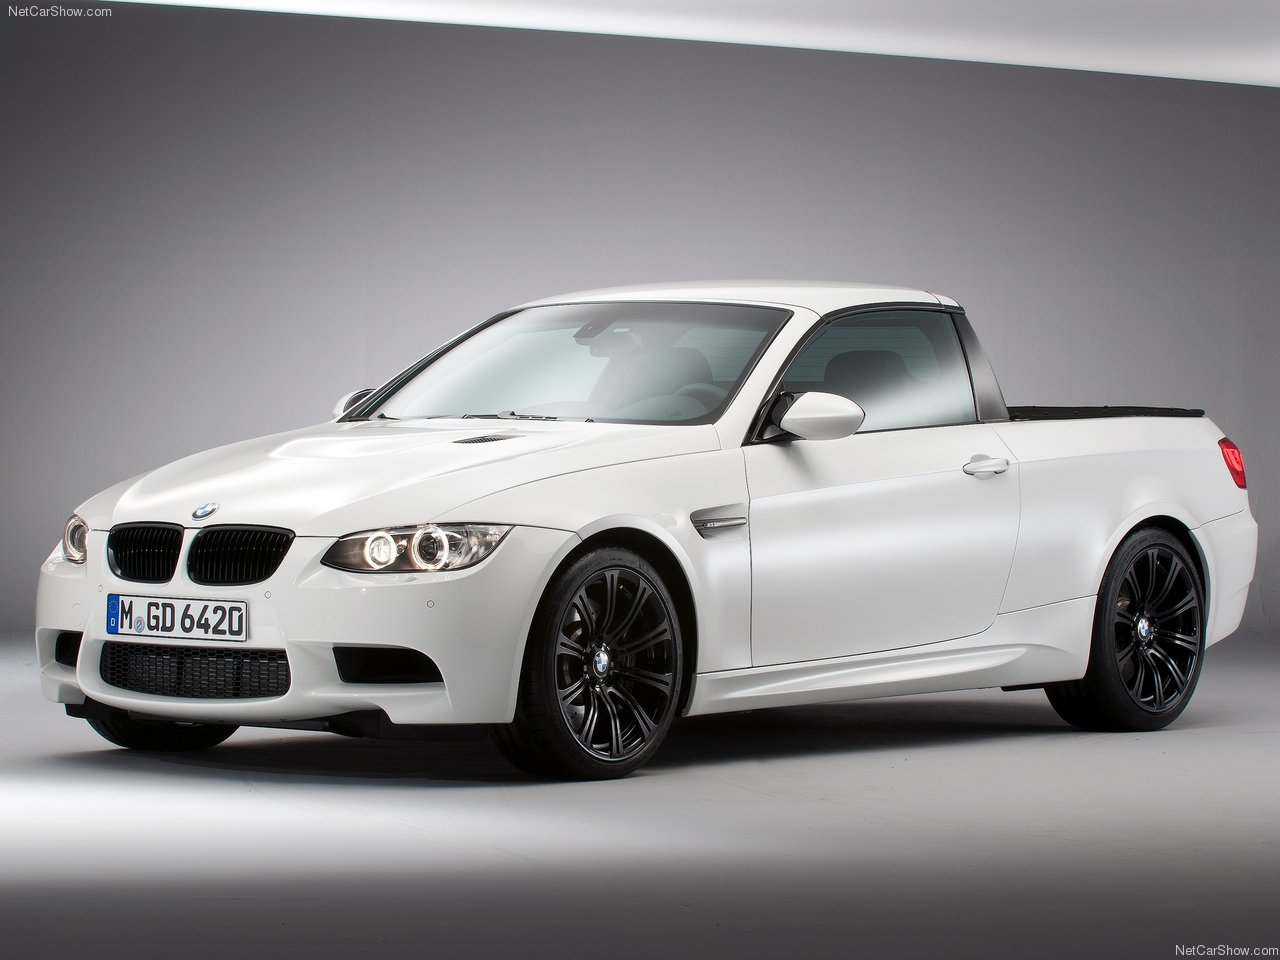 BMW - Auto twenty-first century: 2011 BMW M3 Pickup Concept